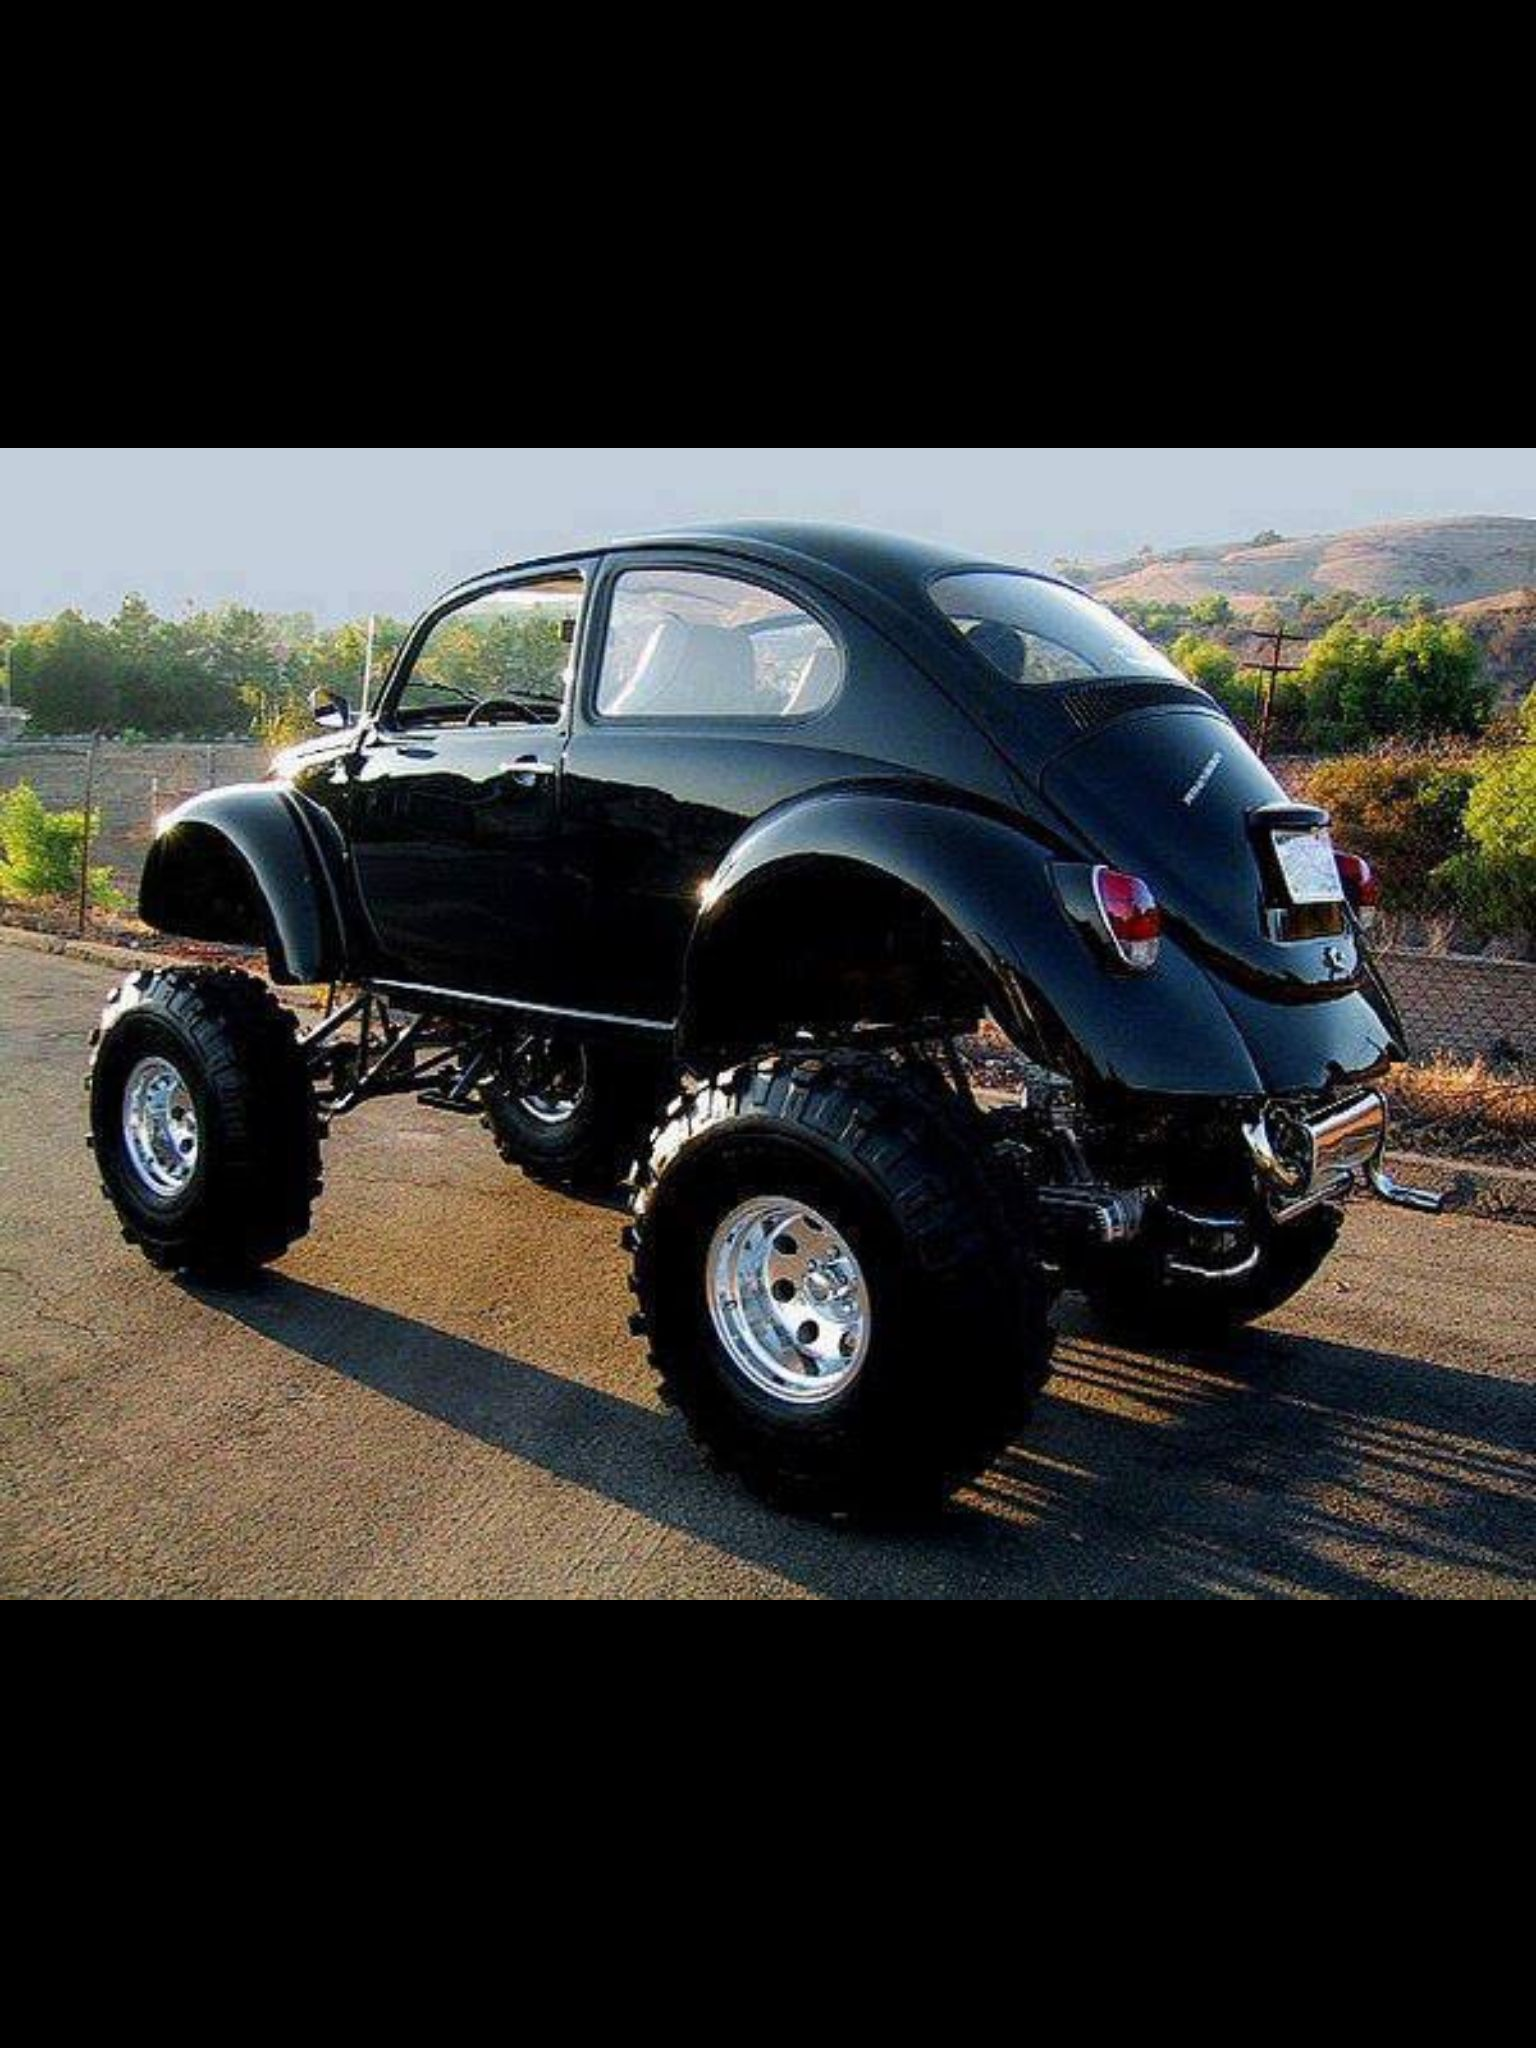 Jacked Up Volkswagen Bug Vw Vw Cars Cars Vehicles